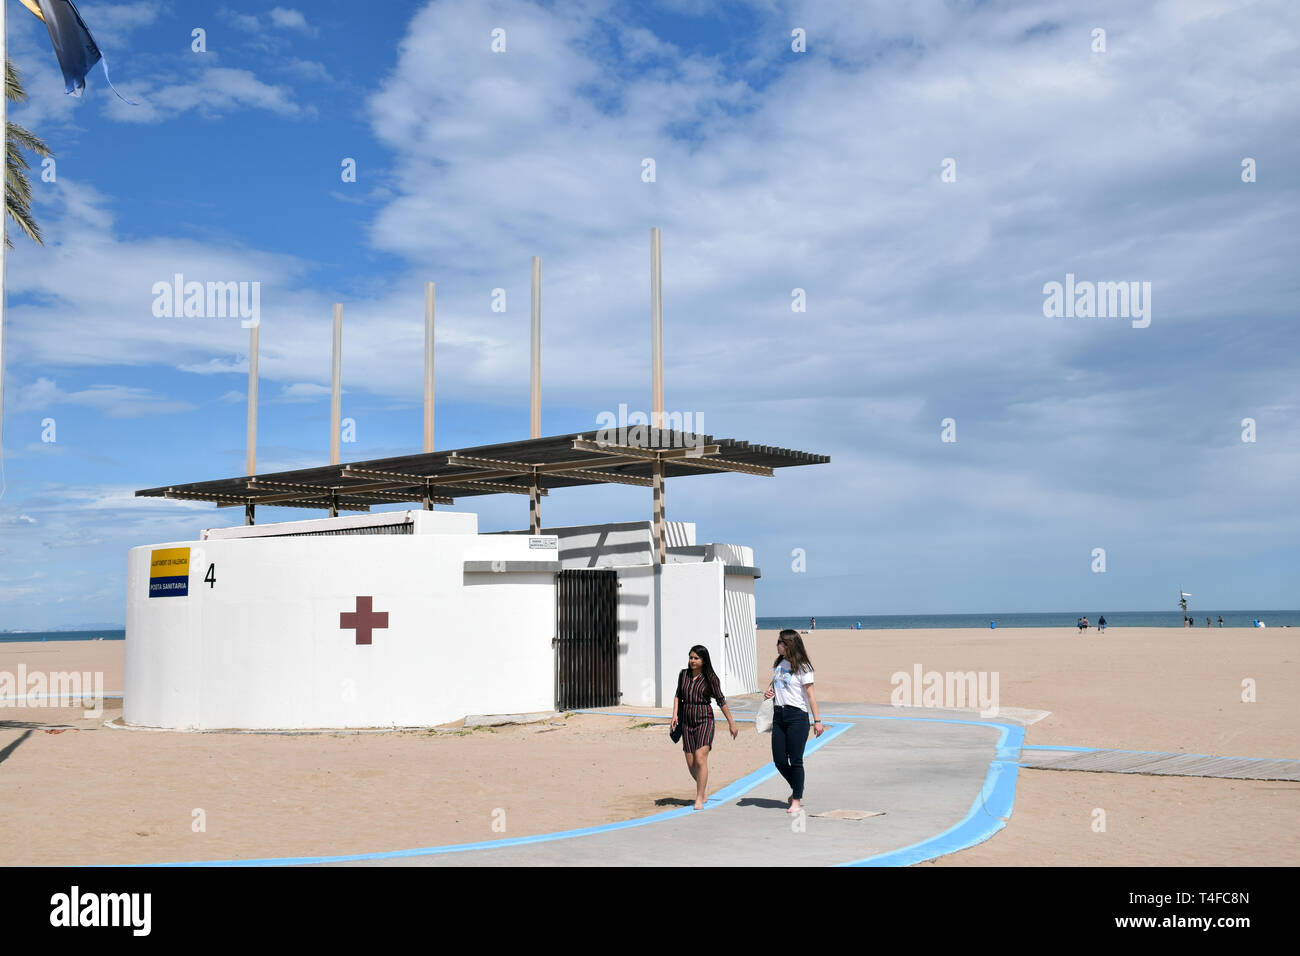 First aid post, Cabanyal beach, Valencia, Spain April 2019 - Stock Image